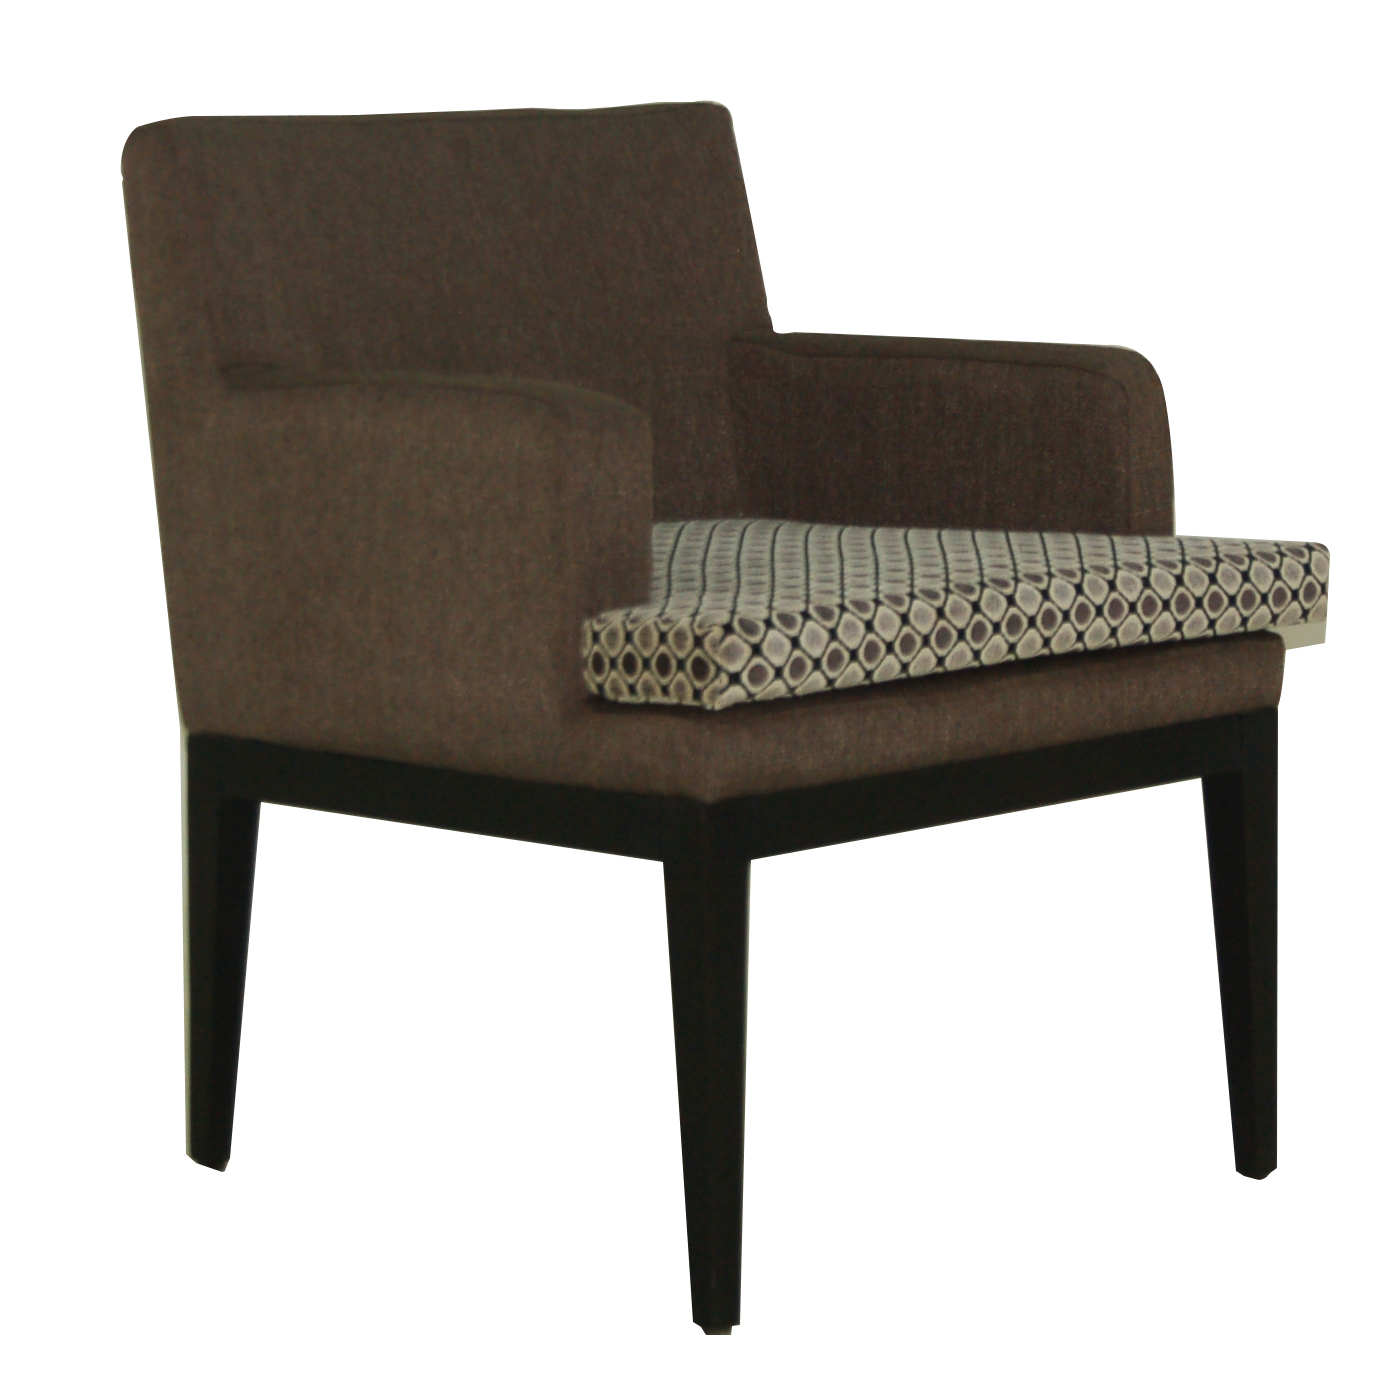 Venice Grey Lounge Chair by Homeland Online Modern  : venice33 from www.homelandfurniture.in size 1388 x 1392 jpeg 580kB